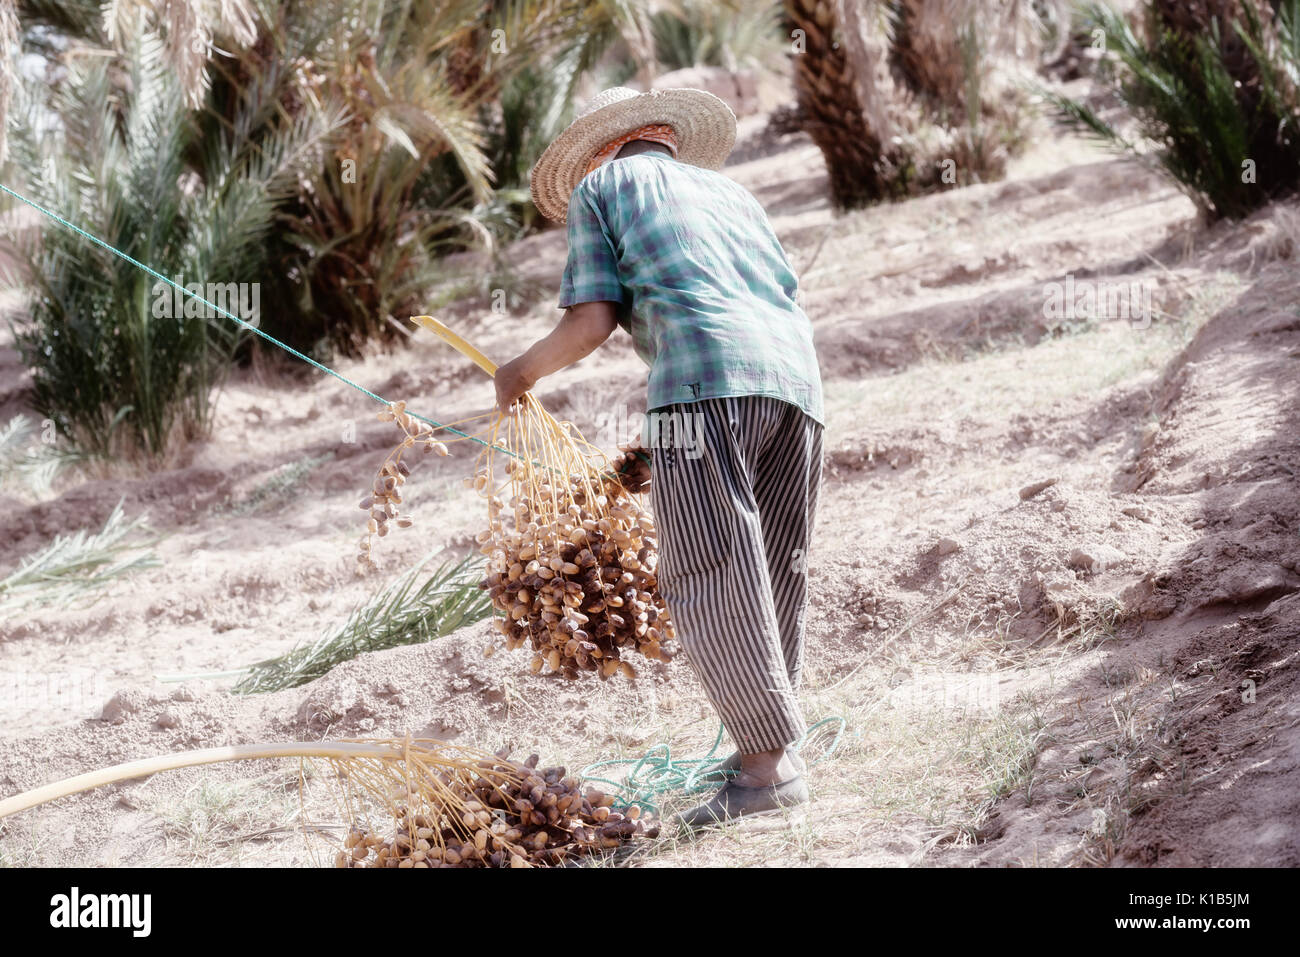 A Moroccan farmer harvests dates from a date palm. High key image with muted colors. - Stock Image